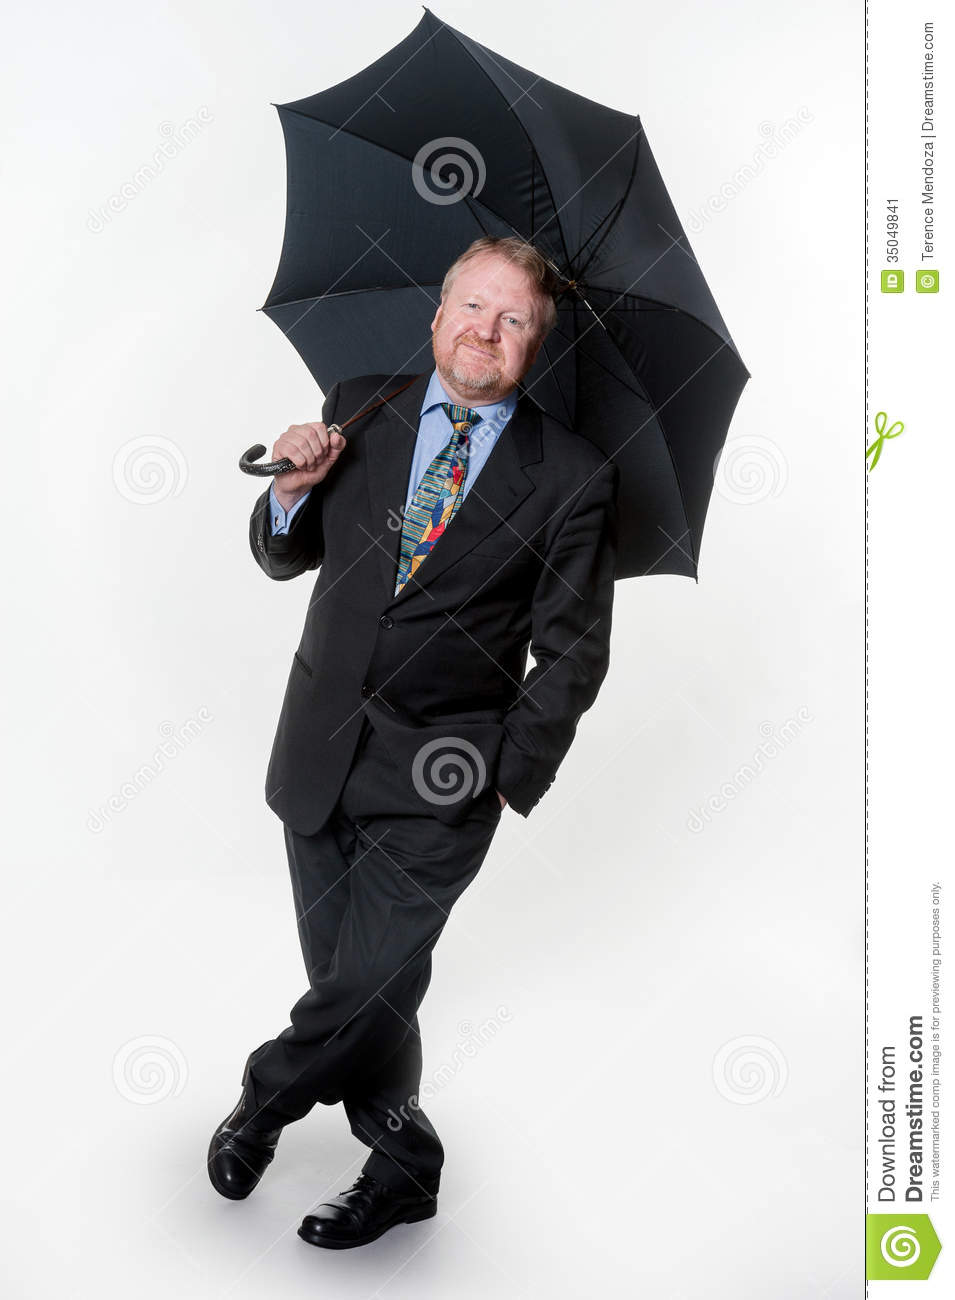 73cc68f6cbf Businessman With Bowler Hat   Brolly - On White Stock Image - Image ...